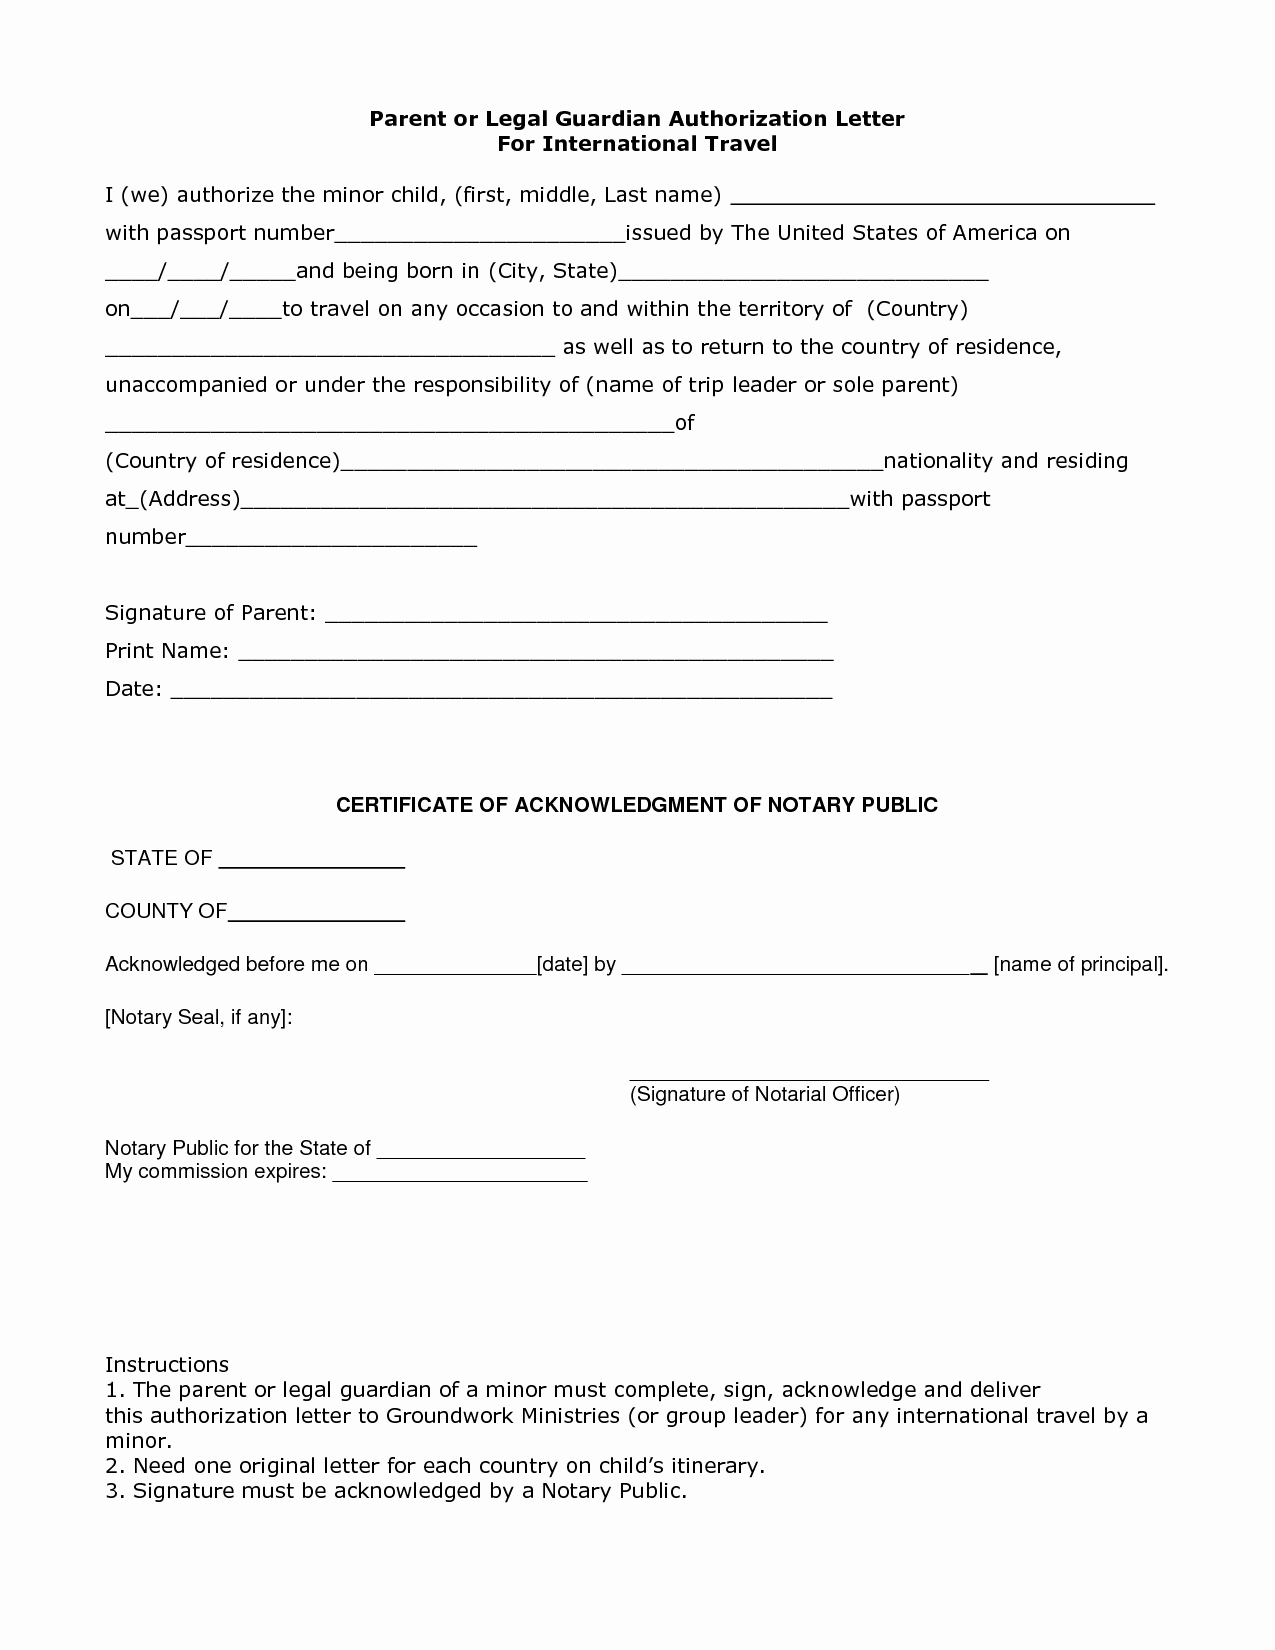 Letter Of Permission to Travel with Grandchildren Awesome Authorization Letter Legal Guardian Guardianship Sample